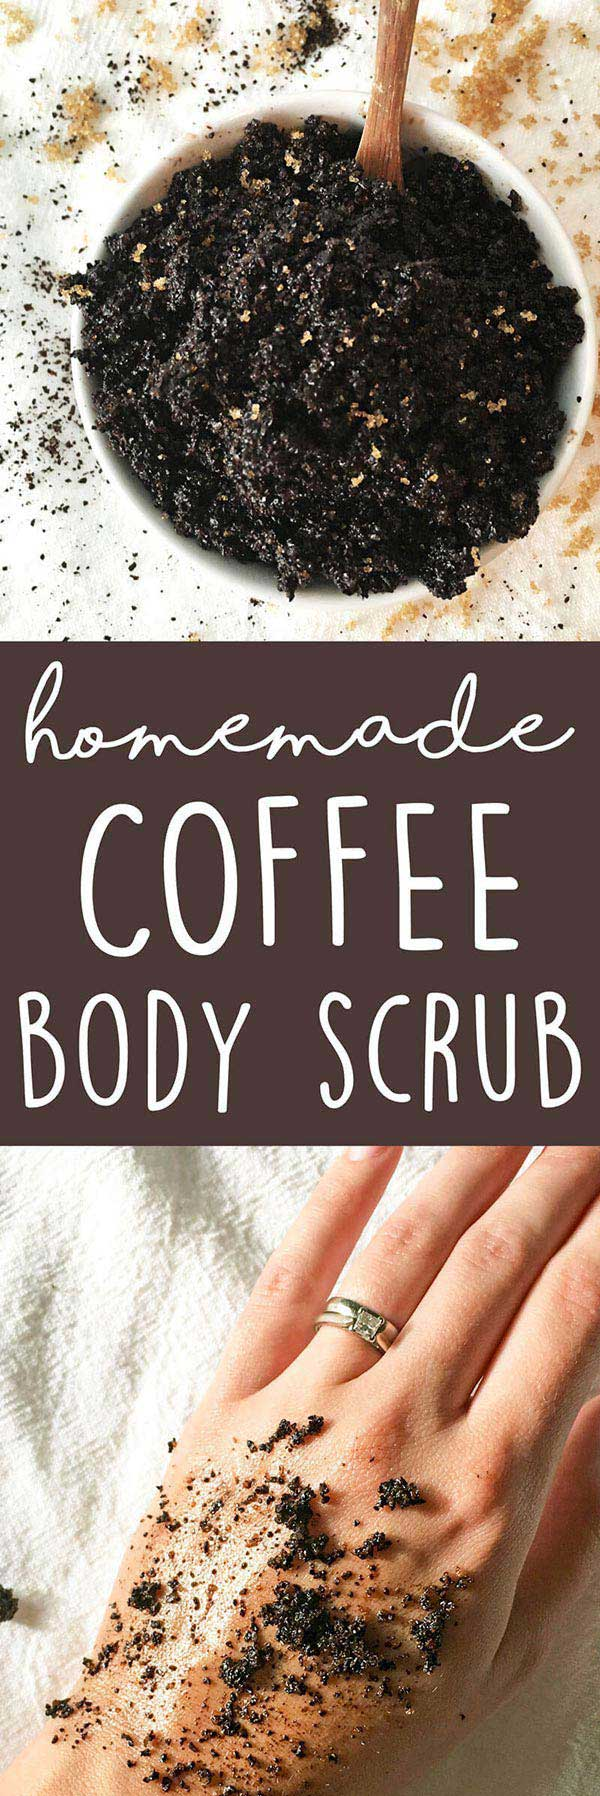 DIY Coffee Body Scrub - this 3-ingredient homemade body scrub recipe is great for